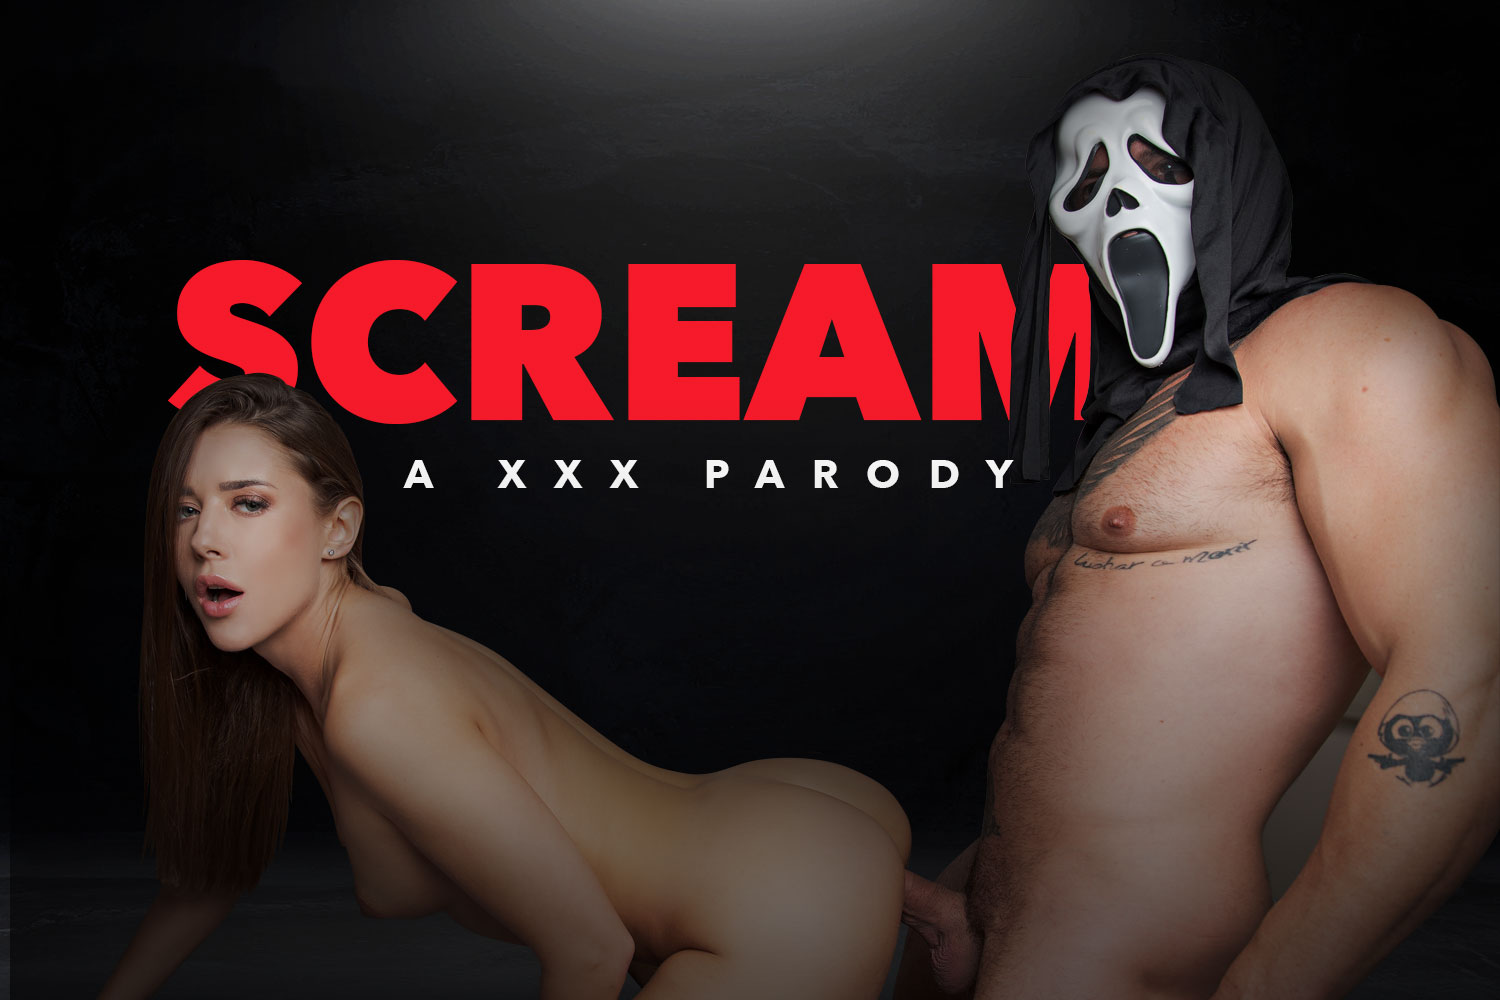 Scream A XXX Parody